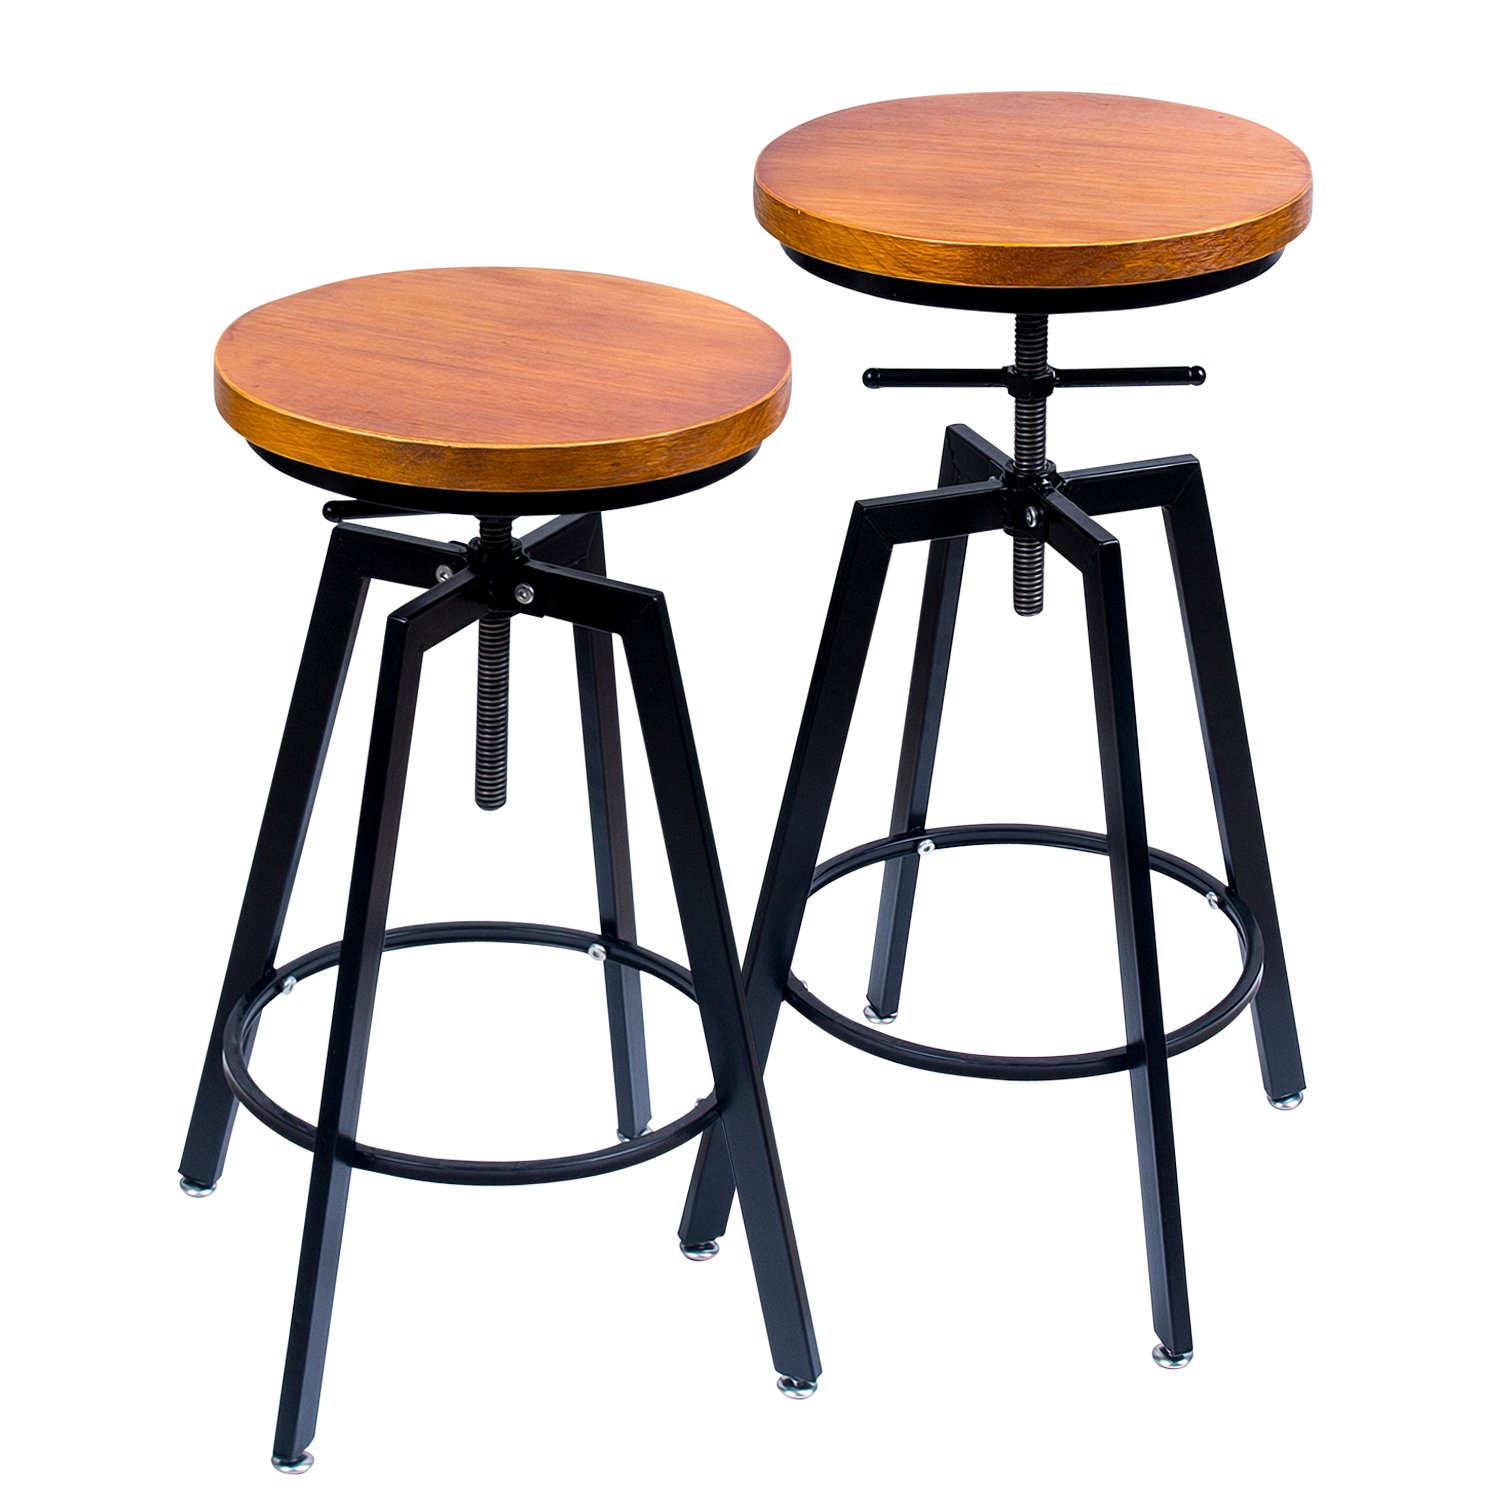 ANXITIEGONGYI Best Bar Stools, Bar Chairs for Pub Bistro Kitchen Coffee House Home, Swivel Round Wood Seat, Metal Base, Bar/Counter Height Adjustable, Set of 2, Black by ANXITIEGONGYI (Image #1)